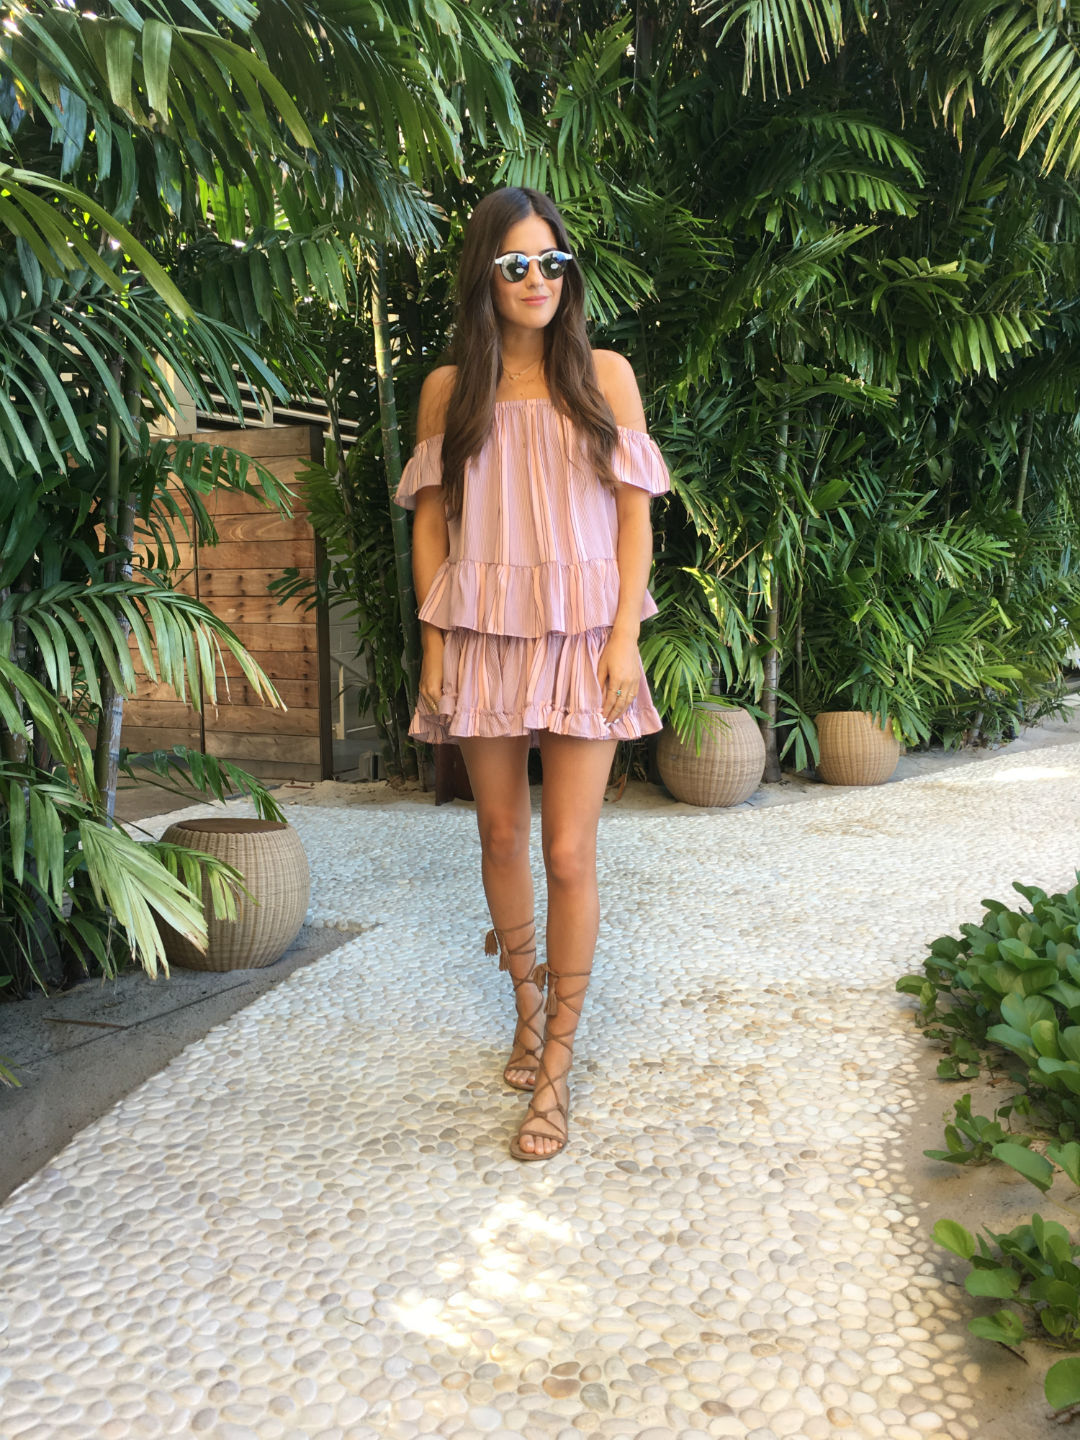 A pair of strappy gladiator sandals are a must have if you want to achieve a simple rustic style like this one, worn by Paola Alberdi. These authentic sandals look great paired with a blush pink ruffle dress, and together they create an awesome summer style! Blouse/Skirt: Misa Los Angeles, Sandals: ASOS.